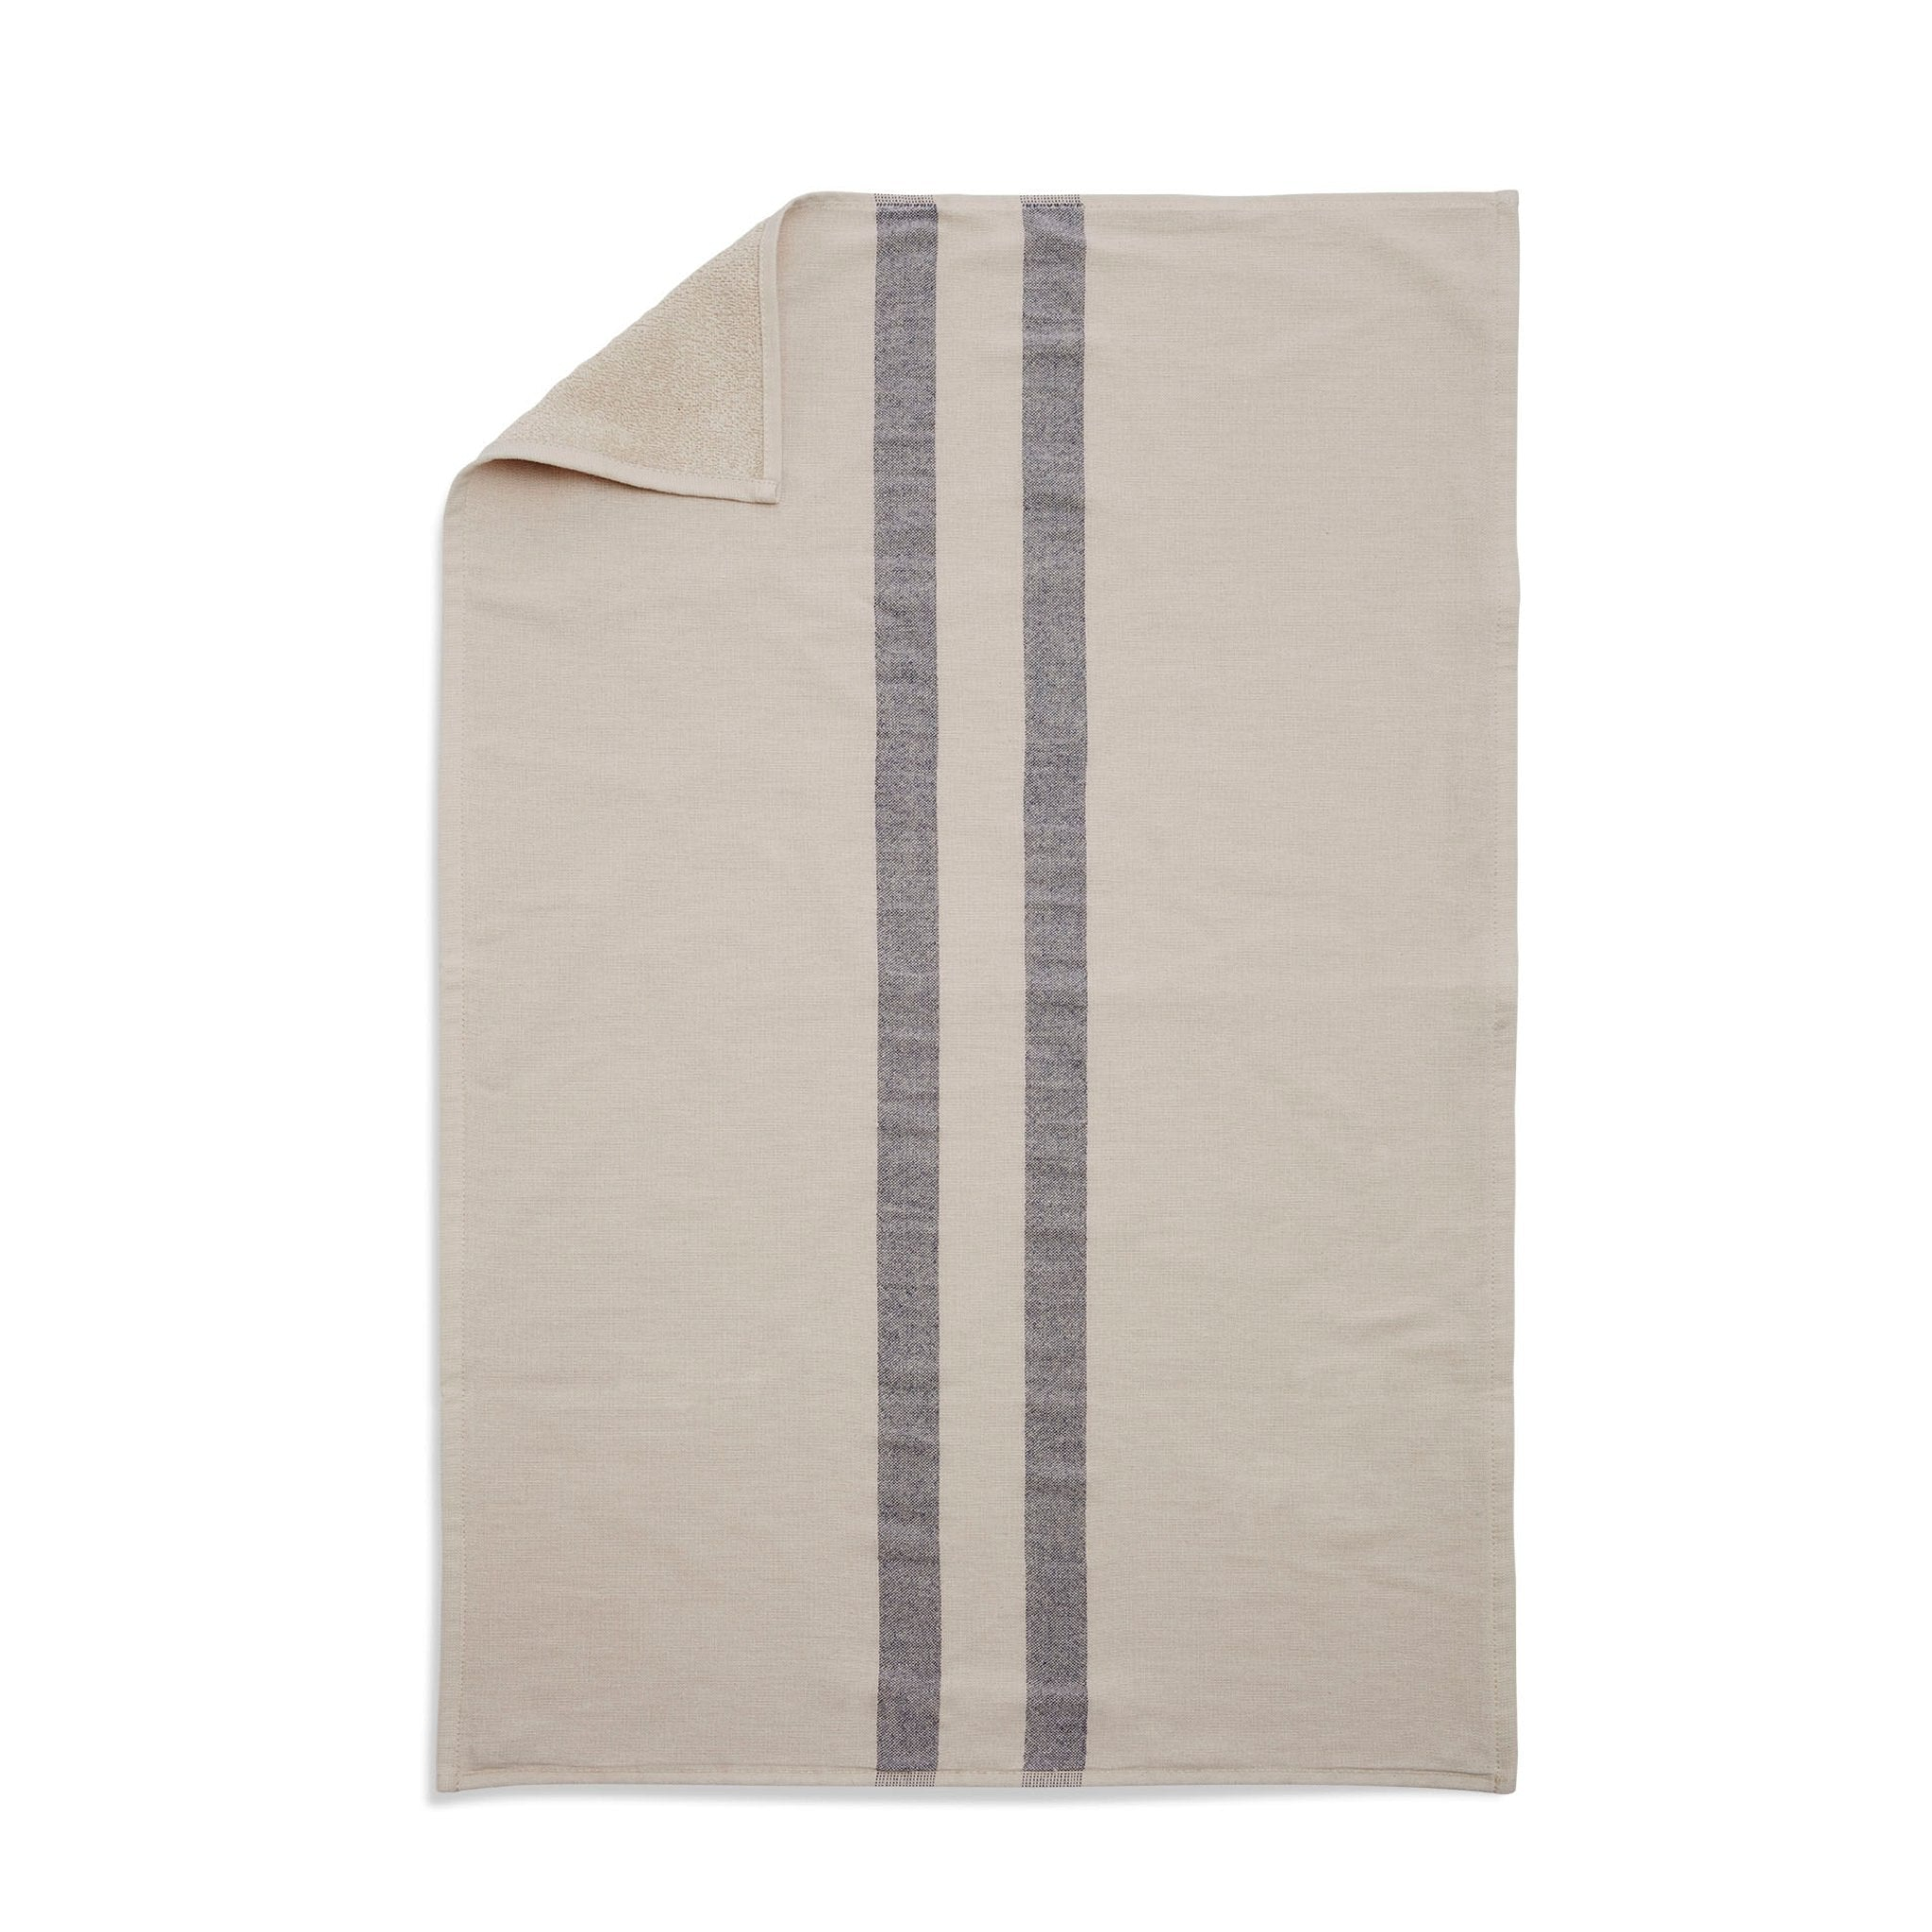 Stripes Towel by Skagerak